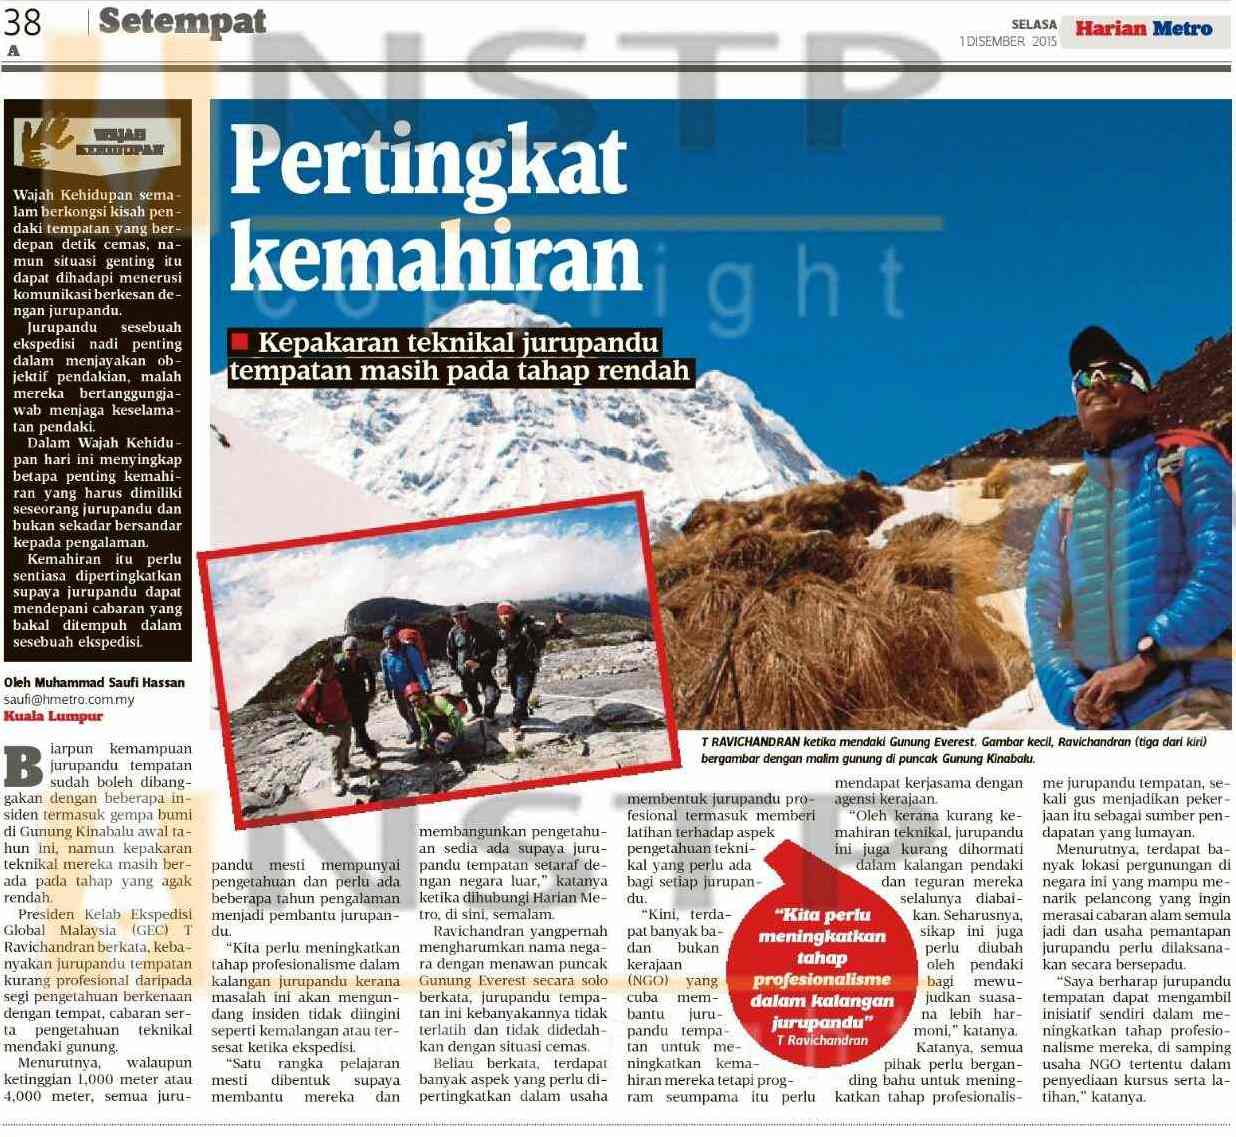 Harian Metro Articles 1